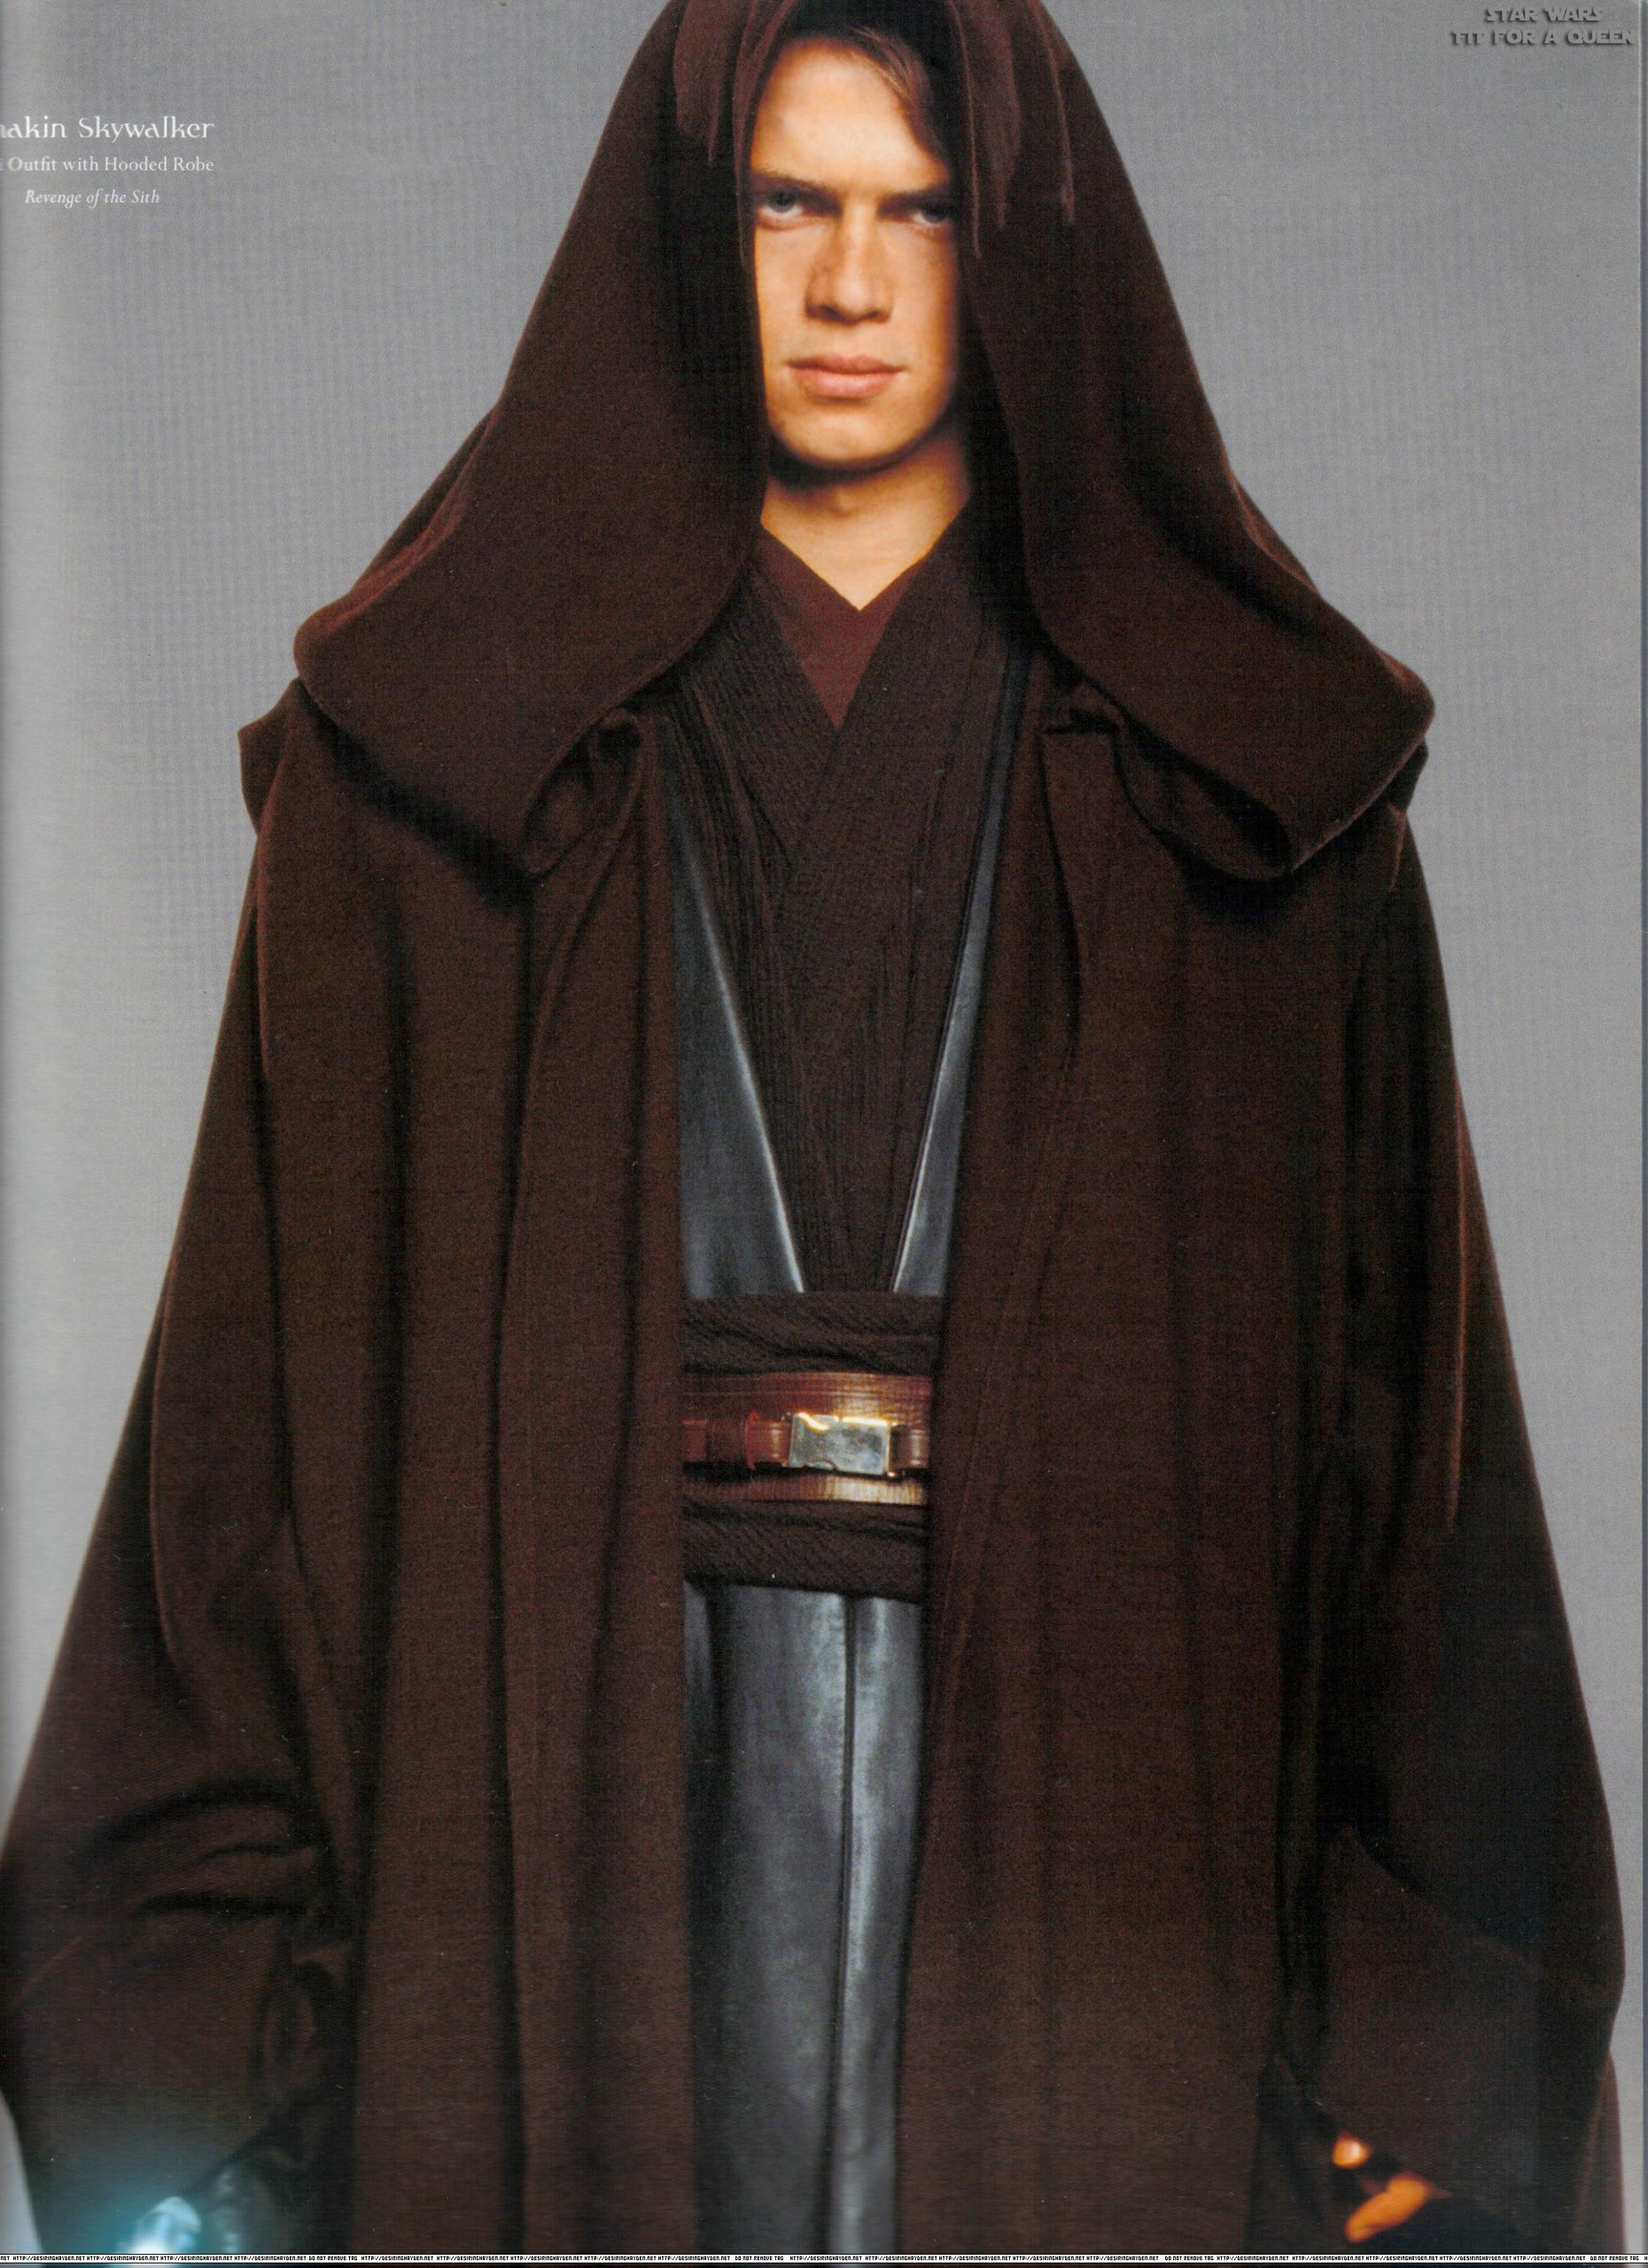 Anakin Skywalker Jedi Star Wars: The Old Republic - [request] Episode Iii Anakin